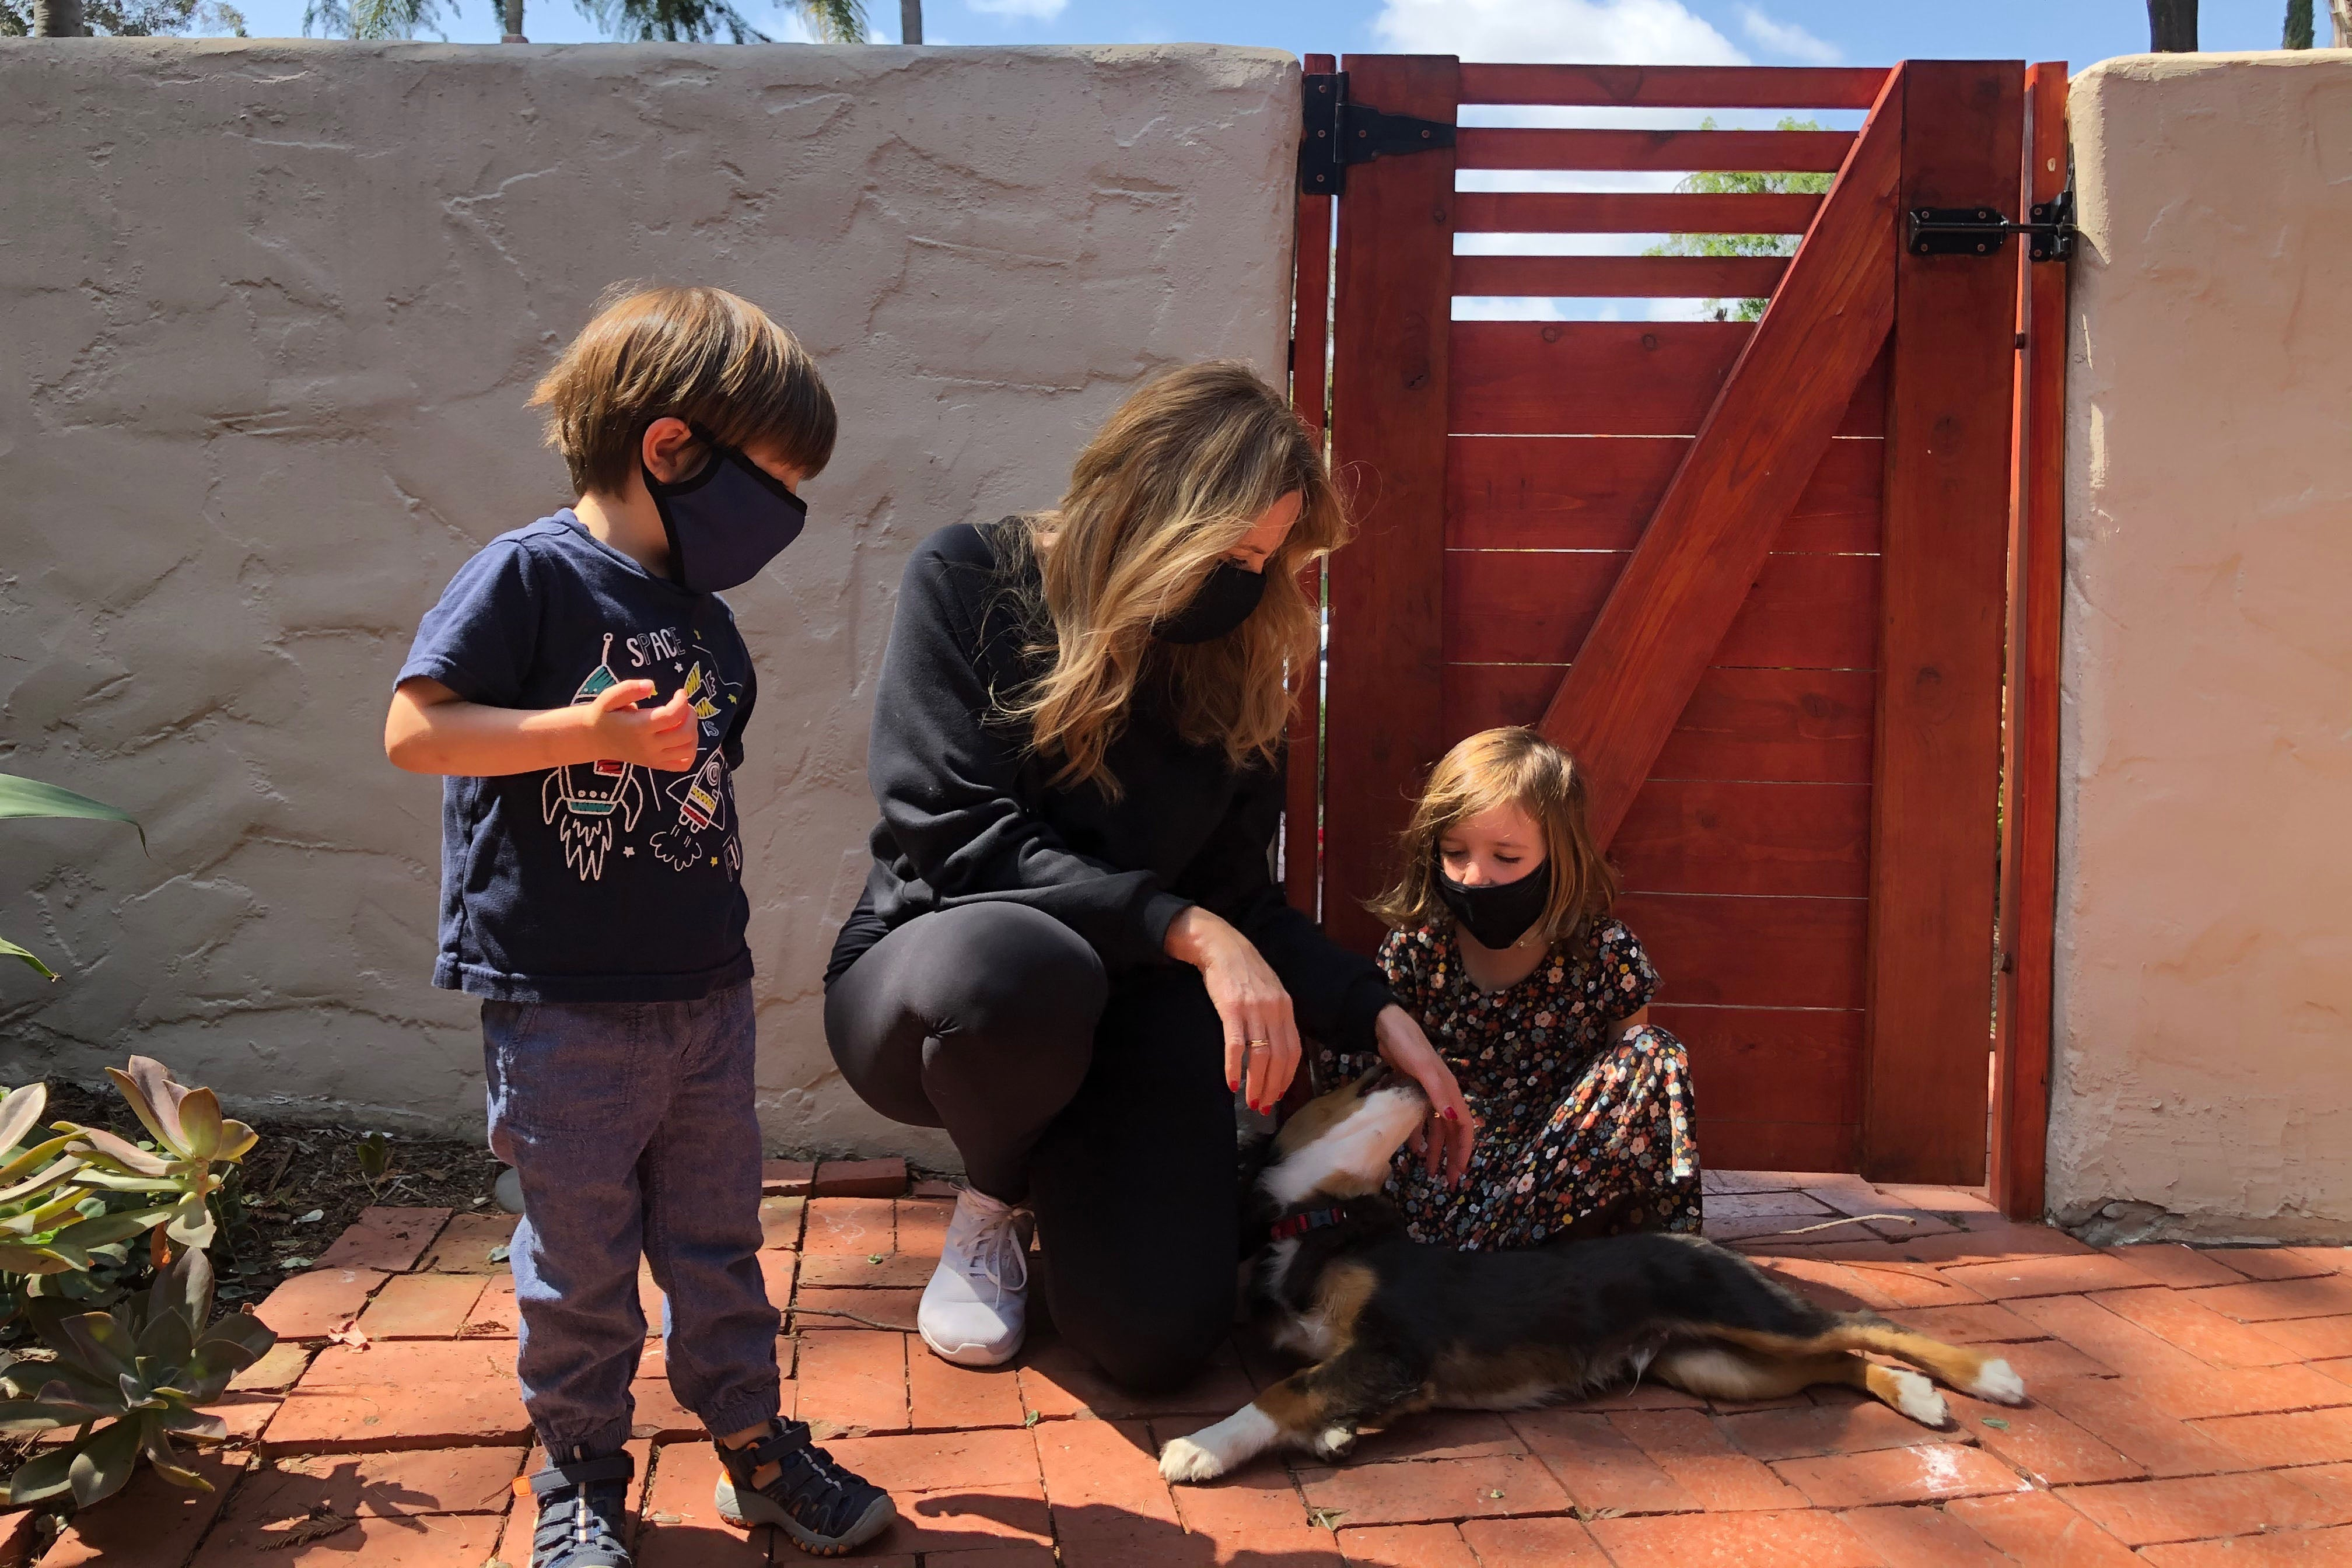 A woman, two kids, and a puppy play in a courtyard while wearing face masks.